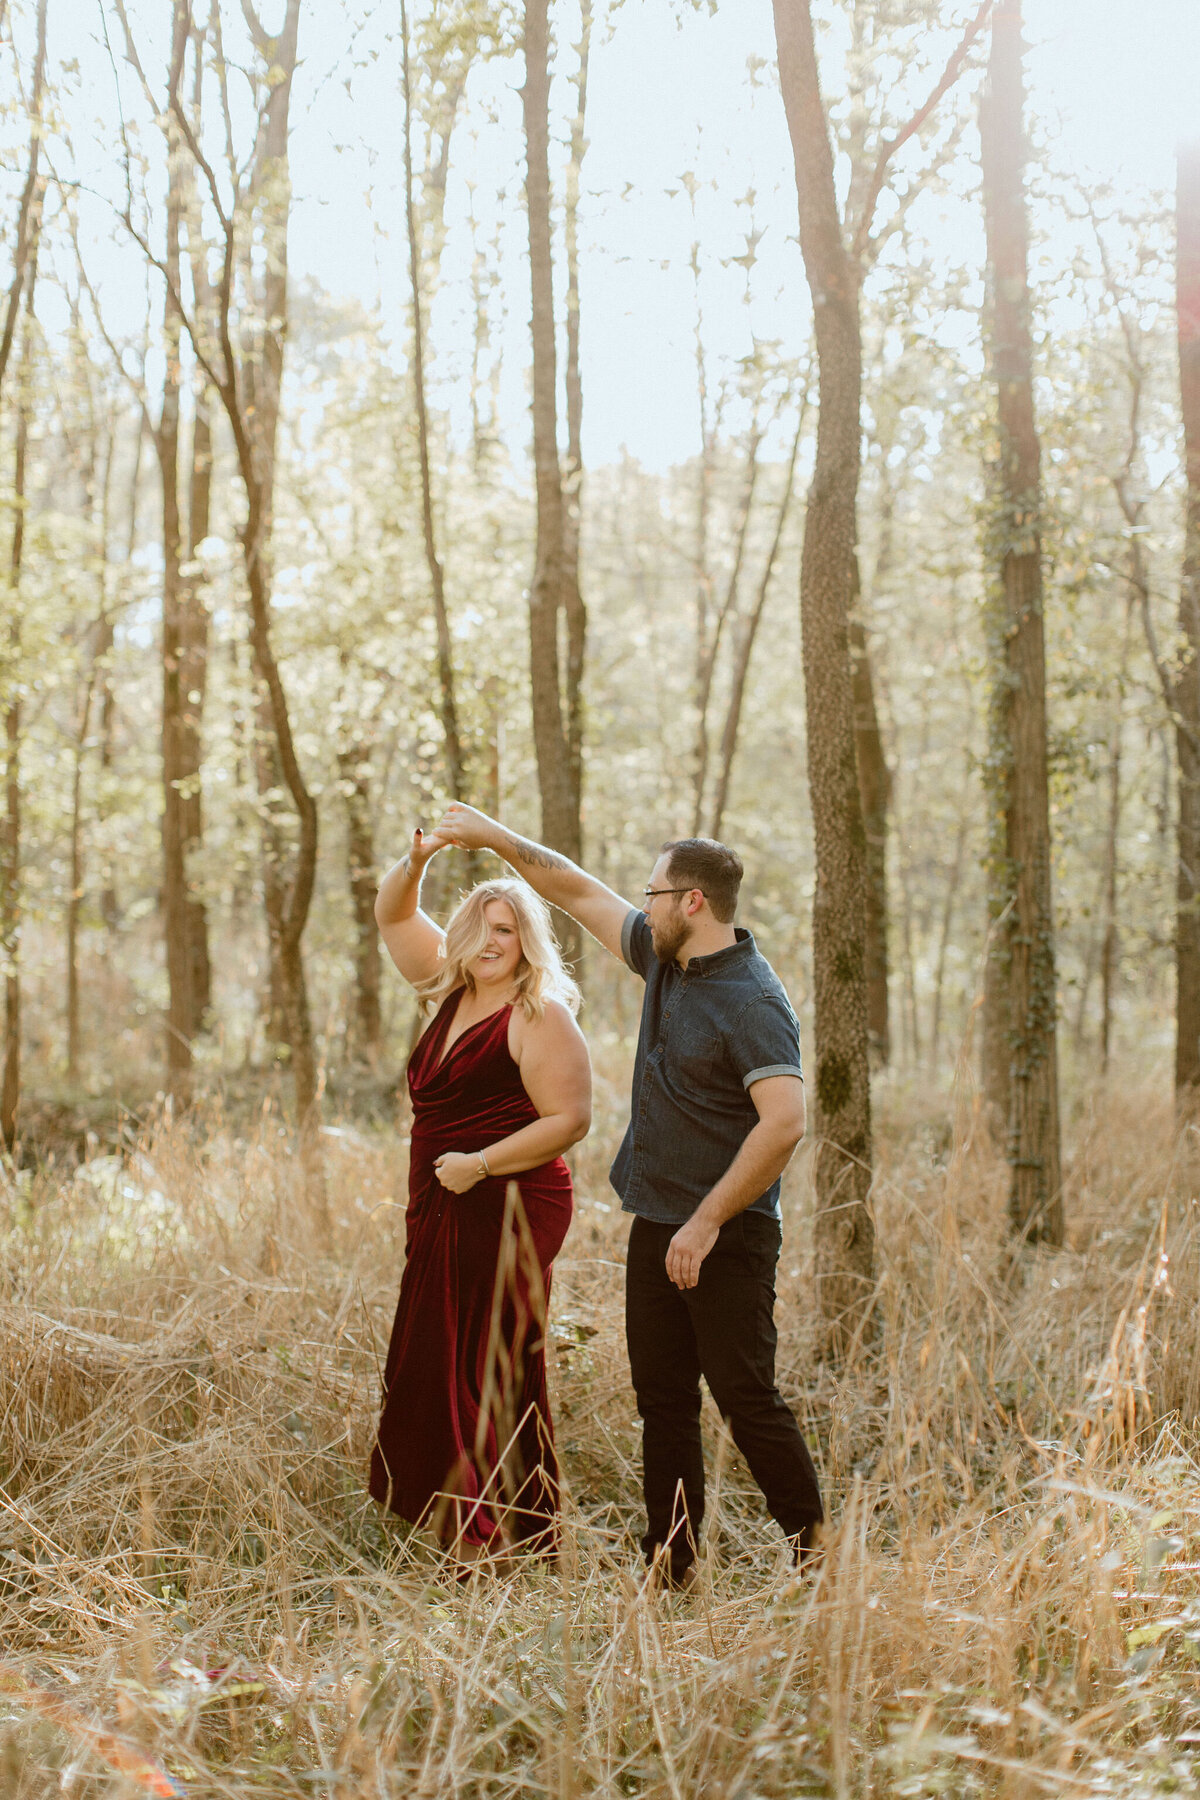 Hannah-Matt_Engagement-Session_Lexington-Kentucky_Anna-Ray-Photography-9